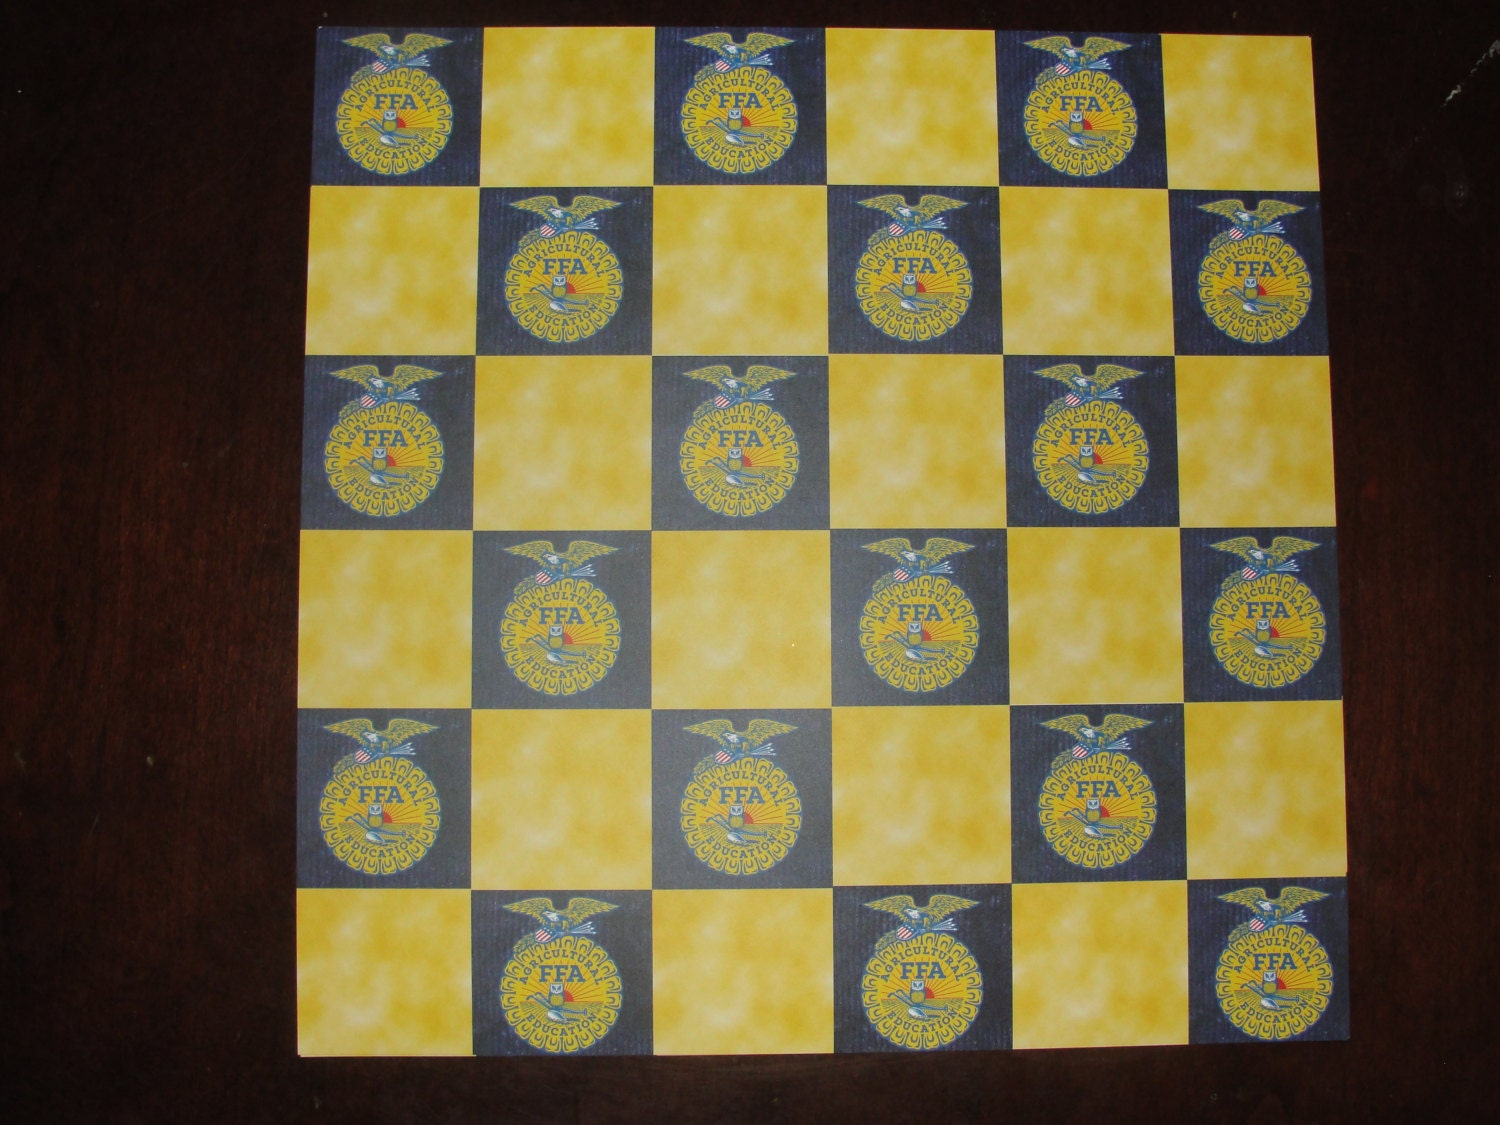 12x12 FFA checker board pattern scrapbook paper